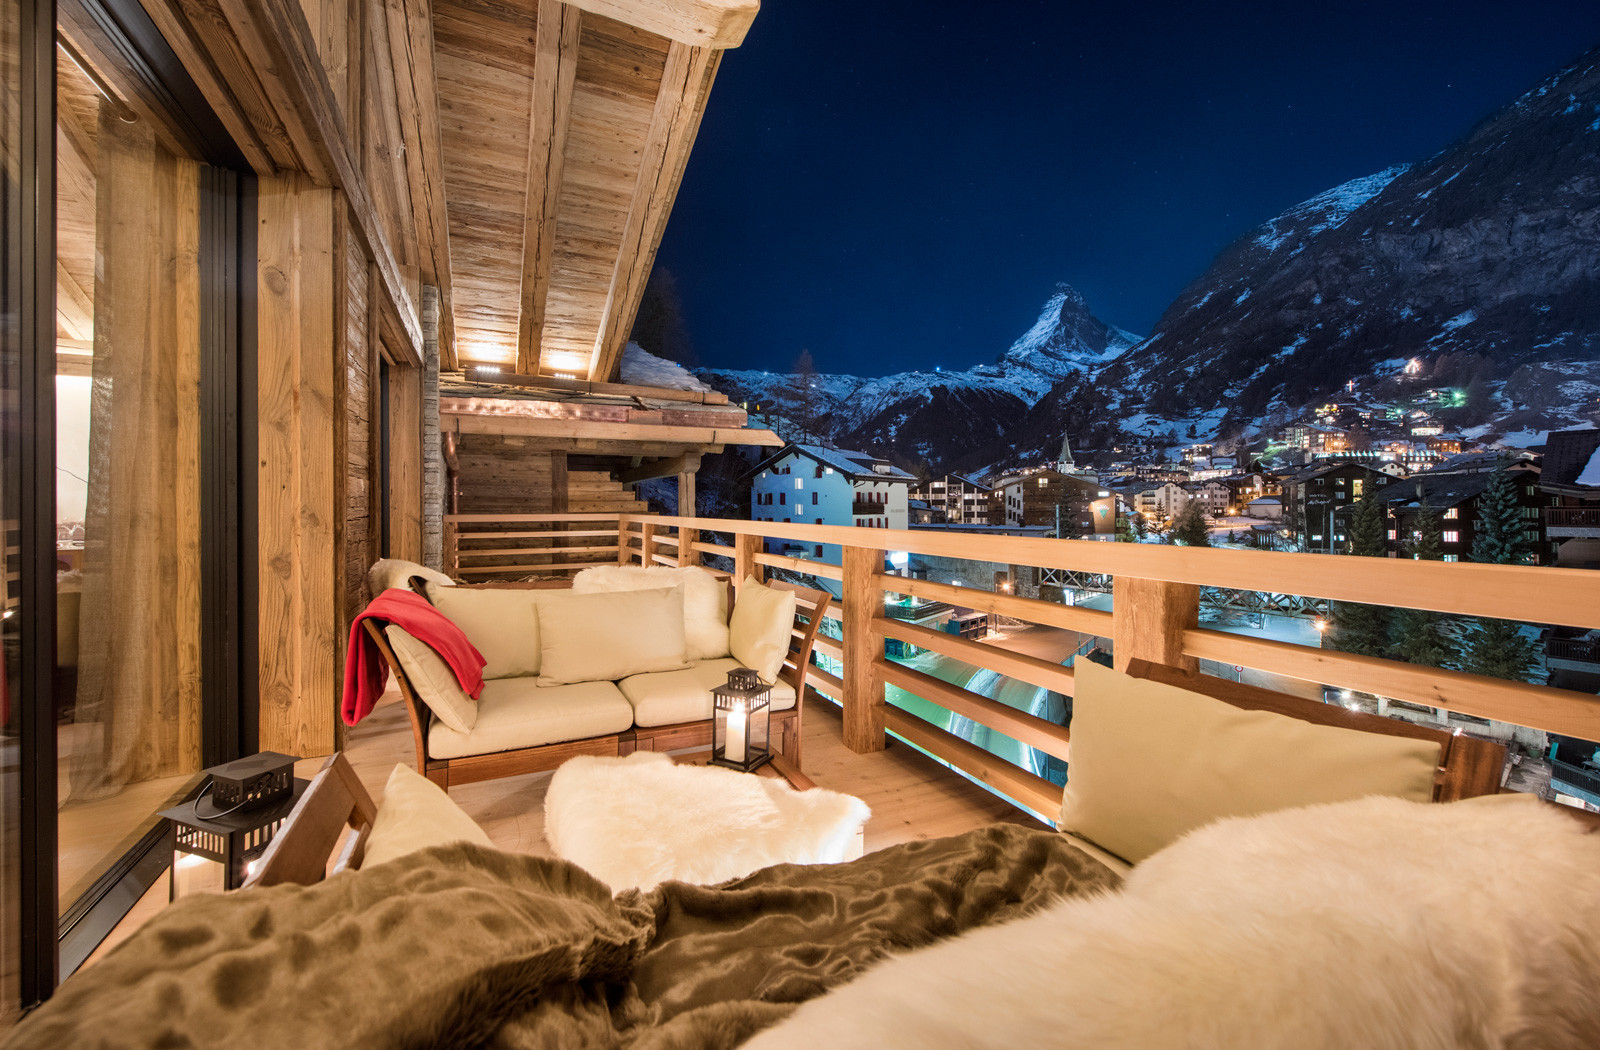 Kings-avenue-zermatt-snow-chalet-sauna-indoor-jacuzzi-private-spa-gym-06-4